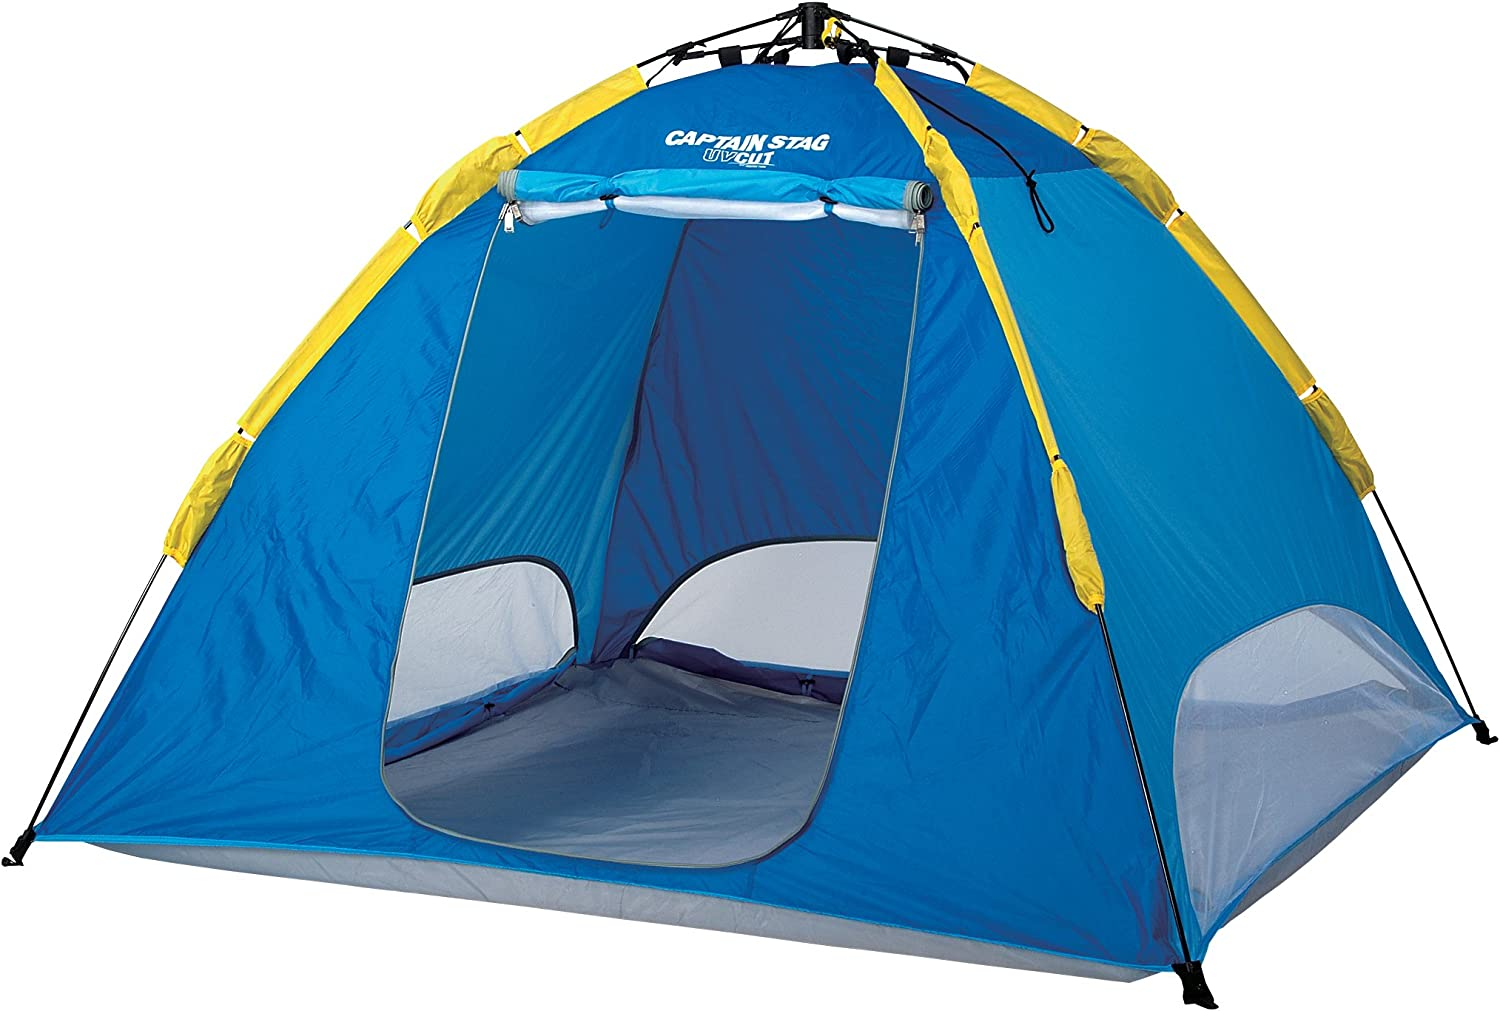 CAPTAIN STAG UV Cut Sun shelter tent one touch set up 200UV M3137